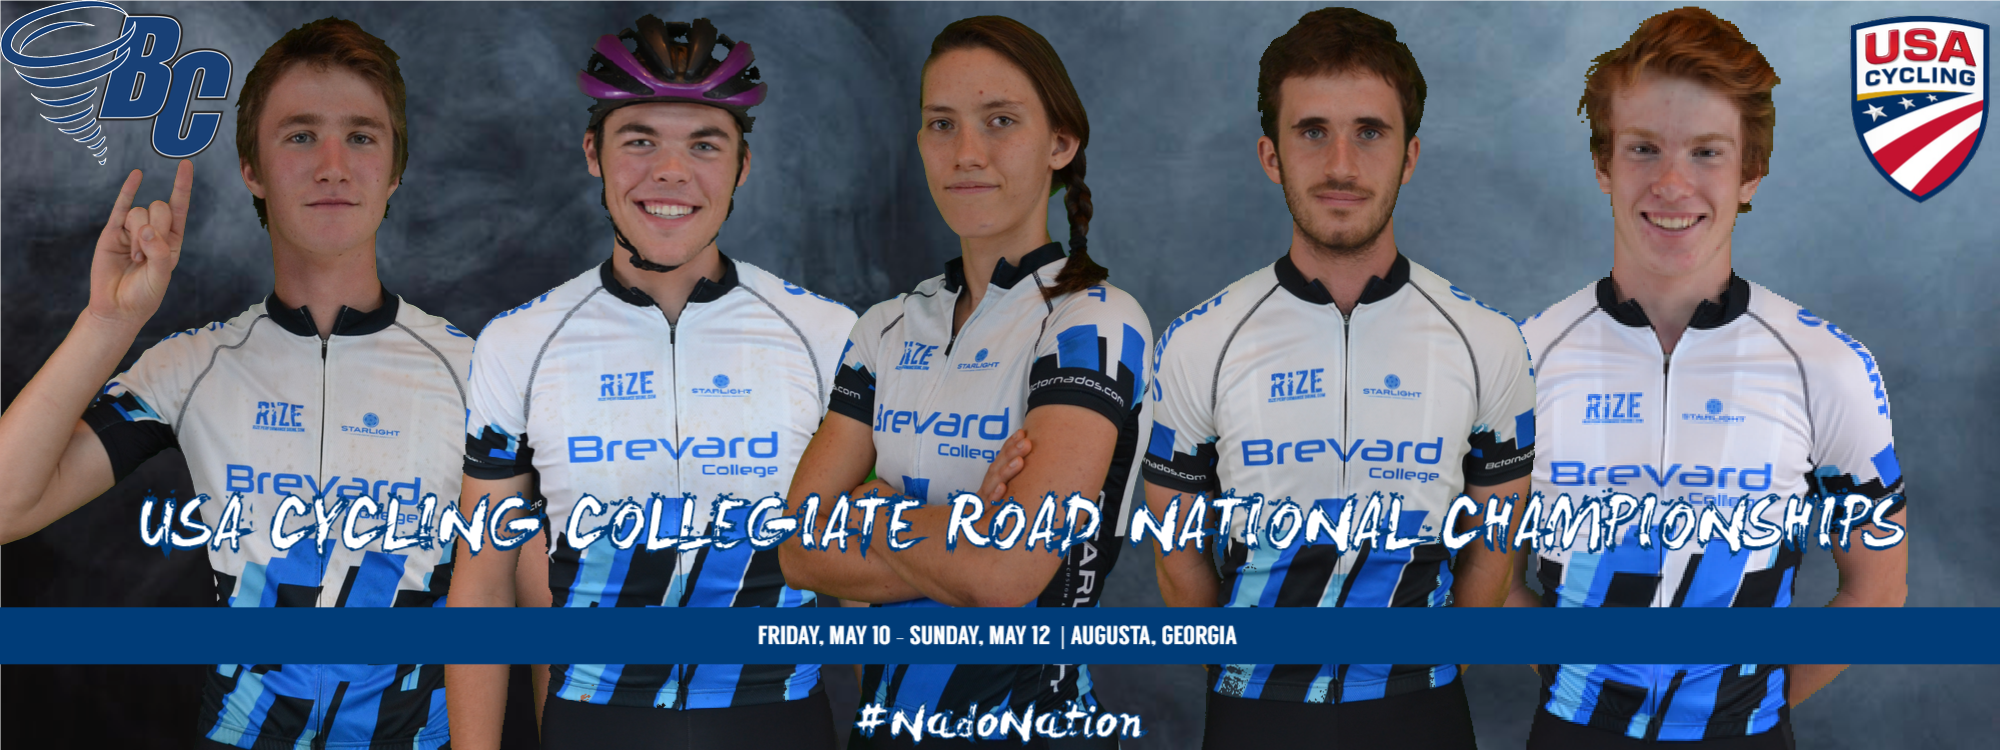 Brevard College Cycling to Compete at USA Cycling Road National Championships